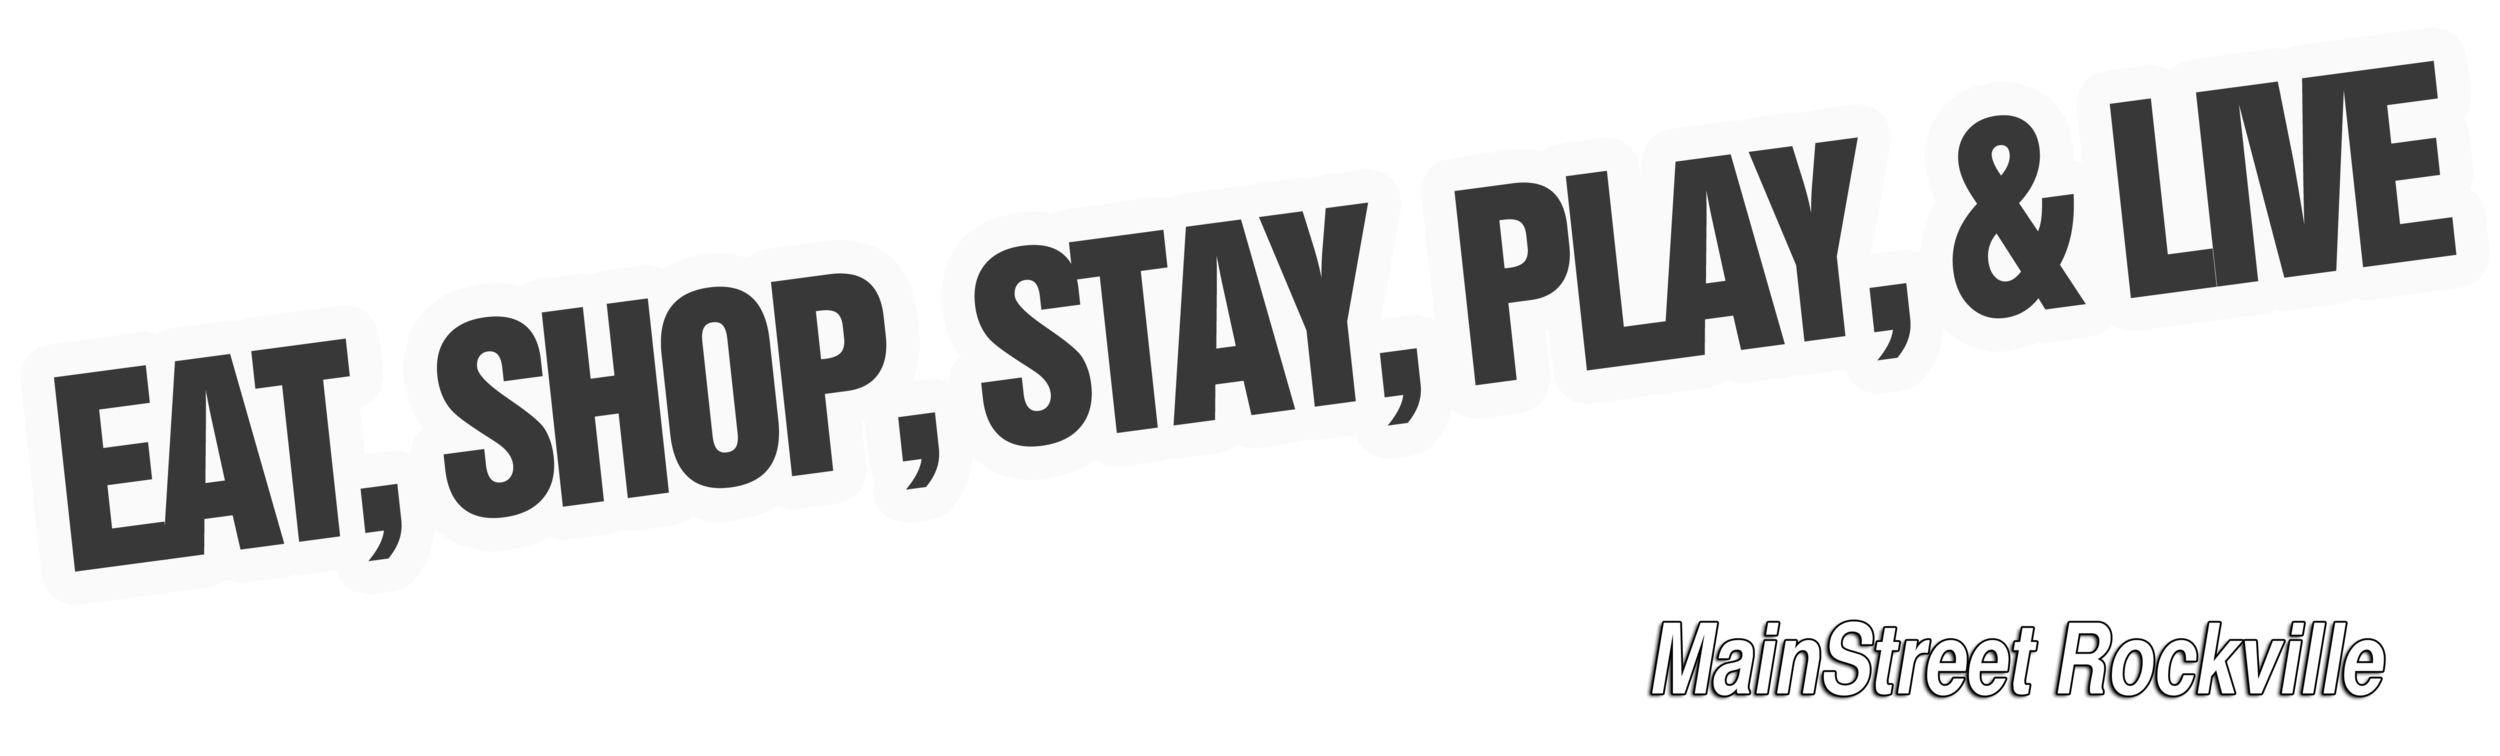 Eat, Shop, Stay, Play, & Live text only.png